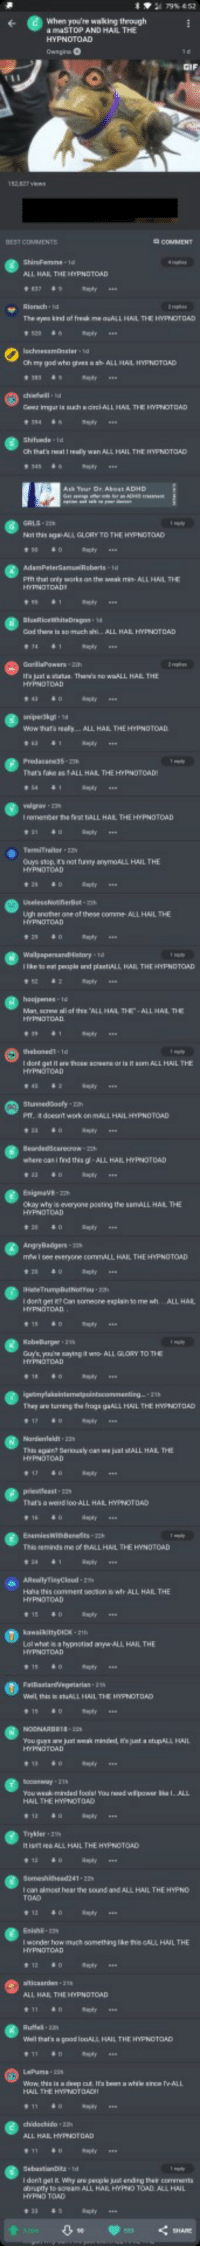 ALL HAIL THE HYPNOTOAD: when you're walking theough  BEST COMMENTS  L HAL THE HYPNOTOAD  Riarach  The ayes kind of freak me auALL HAL THE HYPNOTOAD  Ch that's neat I really wan ALL HAIL THE HYPDTOAD  GALS-3  Nat this aga ALL GLORY TO THE HYPNOTOAD  Ptft that only warks on the weak min-ALL HNL THE  wow thats reely.. ALL HAIL THE HYPNOTOAD  That's fake  S41  es 1ALL HAL THE HY  fest TALL HAL THE  TermiTreiter 22  Guys sop, t's not frmy 0nymouLL HAIL THE  HYPNOTOAD  Ugh another one of these comme- ALL HNL THE  I like to eat peaple and platALL HAIL THE IMPNOTOAD  haojpenes- 1  where cas i fad this gl-ALL HAIL HYPNOTOAD  EnigavB-2  Okay why is everyone posting the semALL HAIL THE  everyone  commALL HAIL THE HYPNOTOAD  I dant get FR? Can someone esplain to me wh  ALL HAL  Guy's, youn. Eayingit wto-AL1ต.ORY TO THE  They ane turning the froga 9aALL HAIL THE HYPNOTCAD  Tht, agzun? Seriously can we lust stALL HAL THE  prestfeast-22  a weird loo ALL HAL  Thia seminds  me of nAL  LHAL THE HYNOTOAD  ALL HAIL THE  Well this Is  L HAIL THE HYPNOTDAD  You guys are just weak minded, Hs junt a stupALL HAIL  13  ly  You weak minded foolal You eed wllpawsr hea I. ALL  HAIL THE HYPNOTOAD  Trykler 21h  ree ALL HAIL THE  the sound and  ALL HAIL THE HYPNO  Enishi-22s  I wonder how much something lke this GALL HAILTHE  L HAIL THE HYPNOTOAD  Well hat's a good IoaALL HAIL THE HYPNDTOAD  ALL HAIL HYPNOTOAD  brupty to soreane ALL HARL HYPNO TOAD ALL HAIL ALL HAIL THE HYPNOTOAD